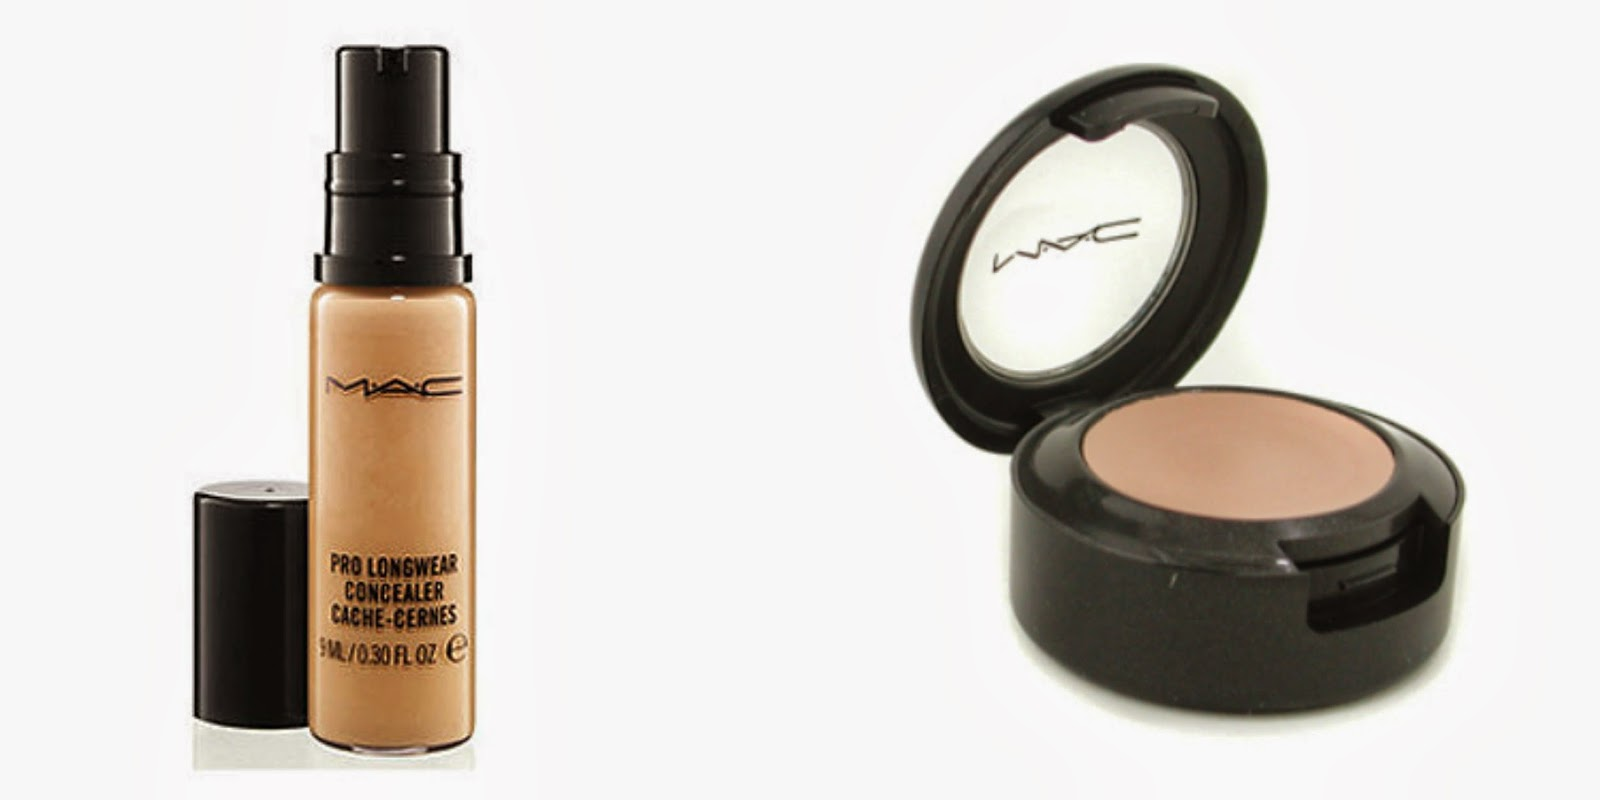 The Best Concealers for South Asian Skin